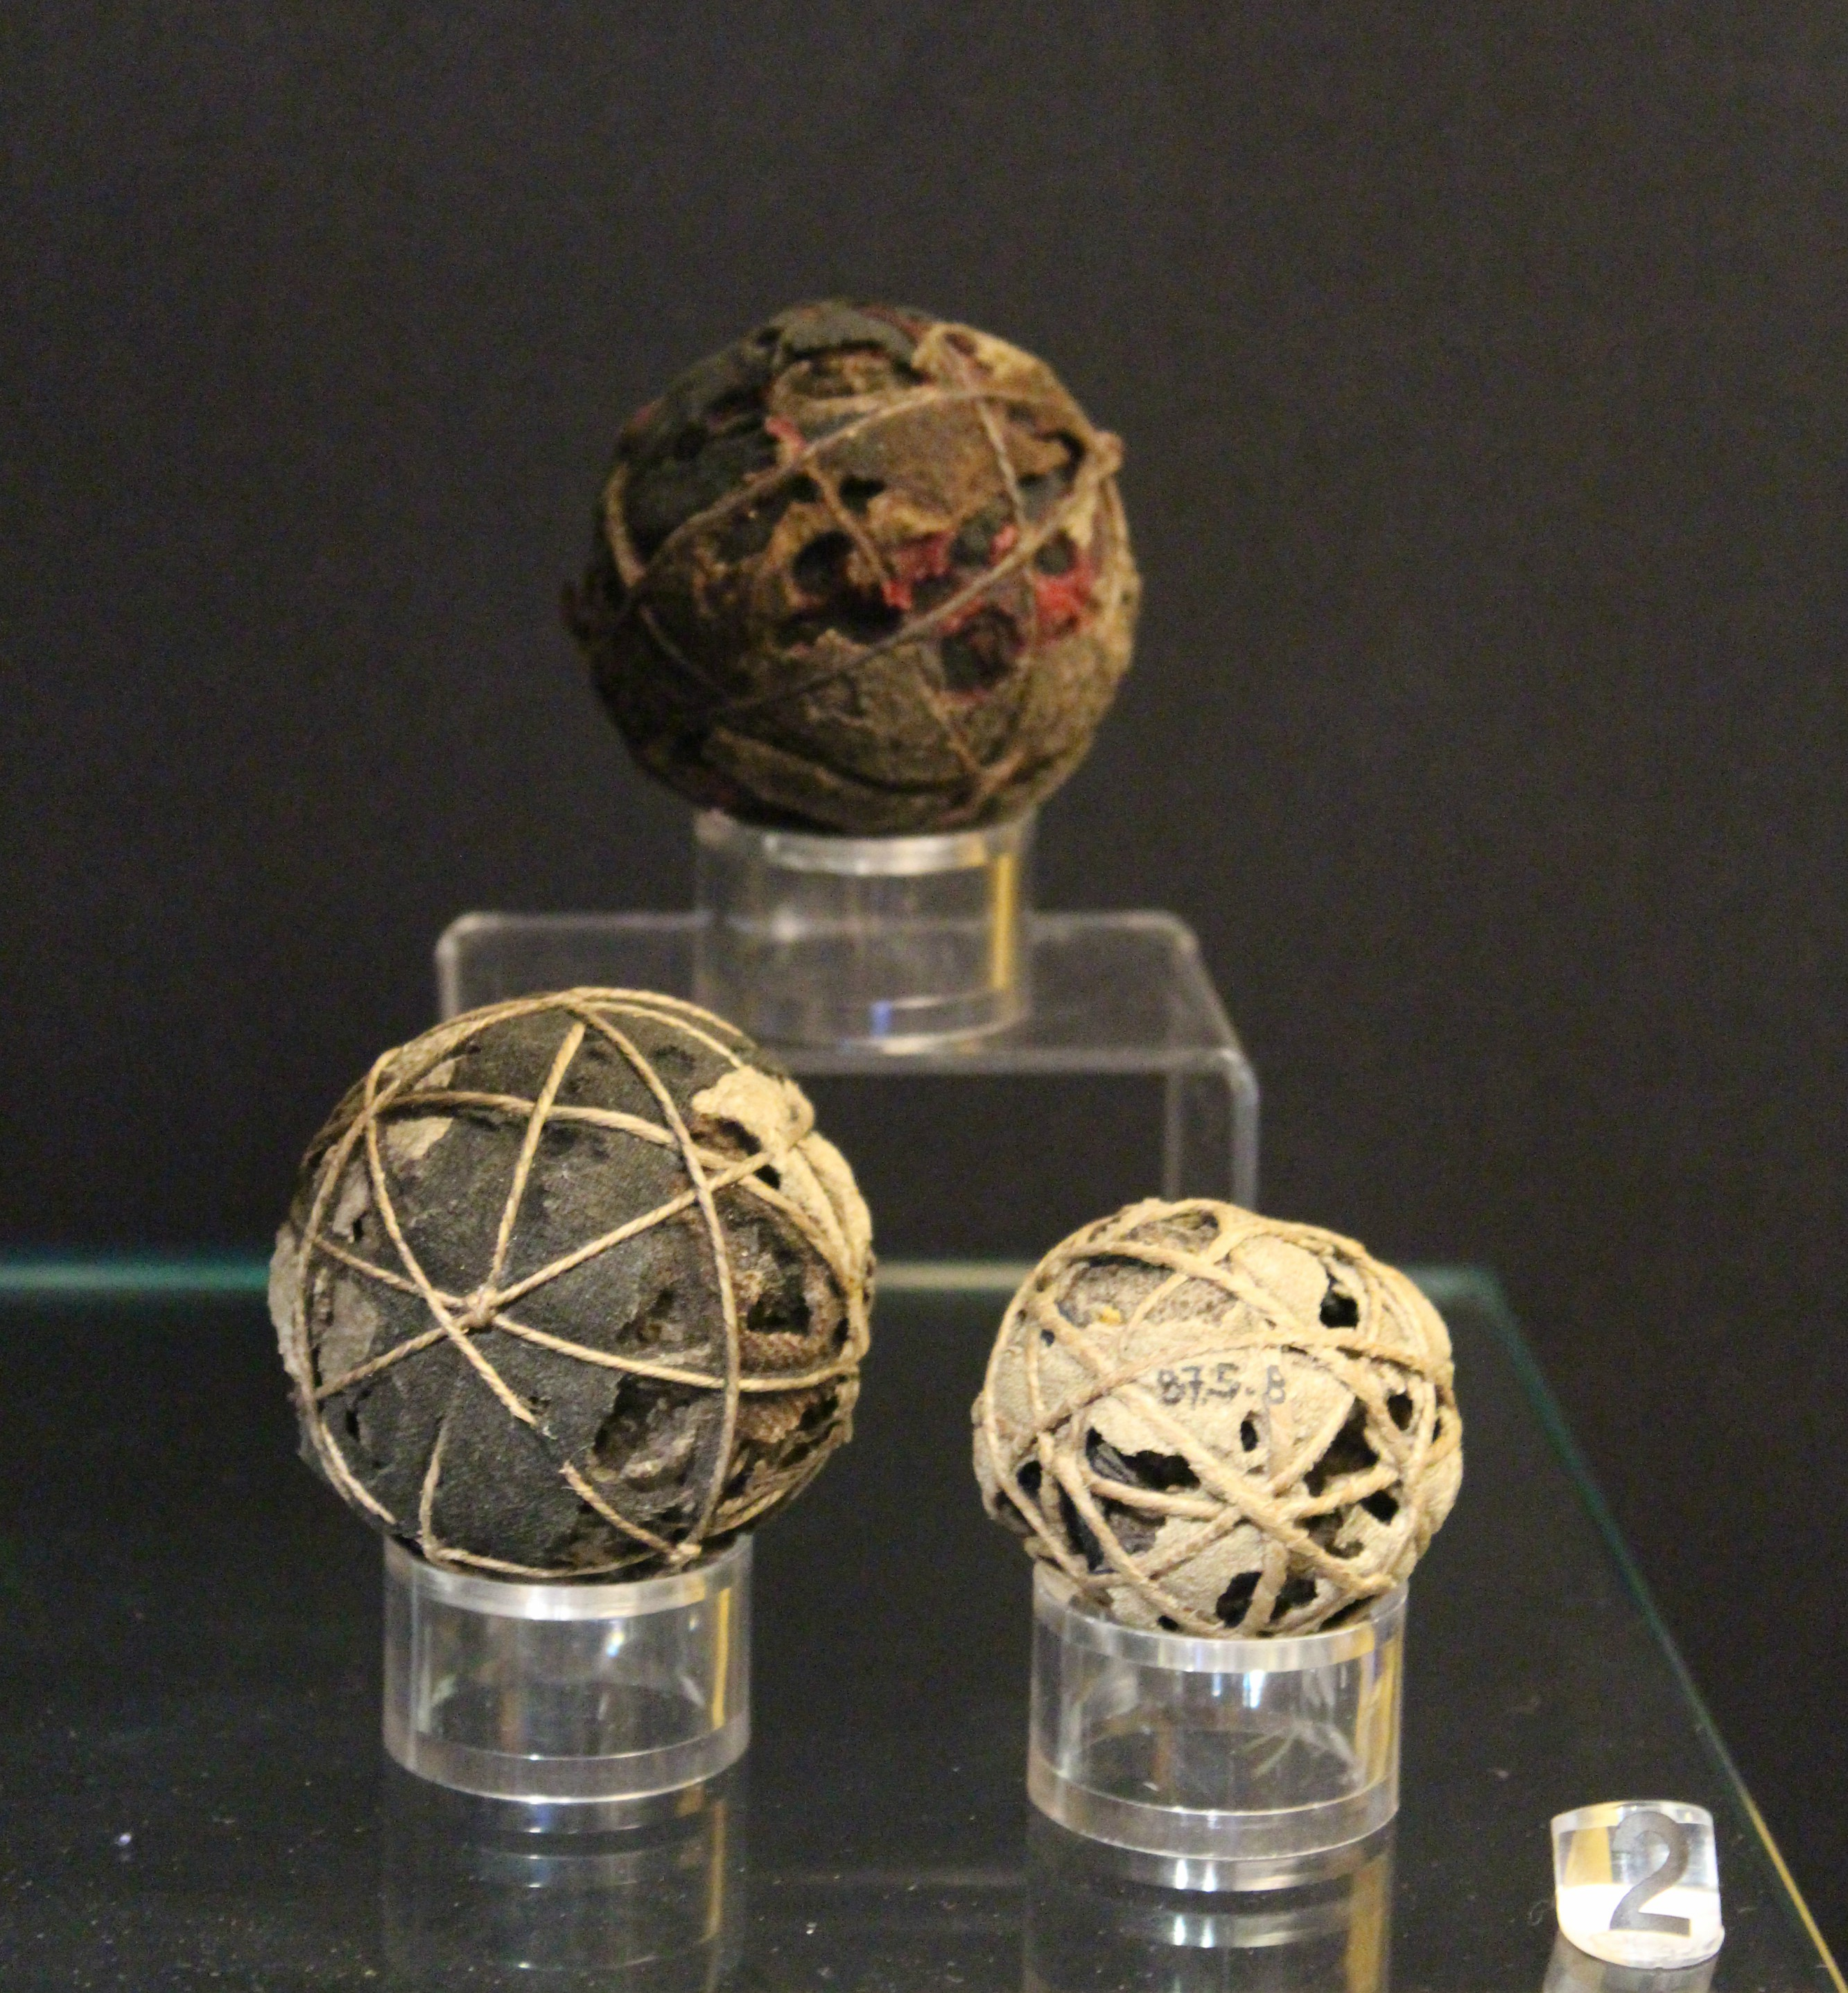 A photograph of three Real Tennis balls which are over 400 years old